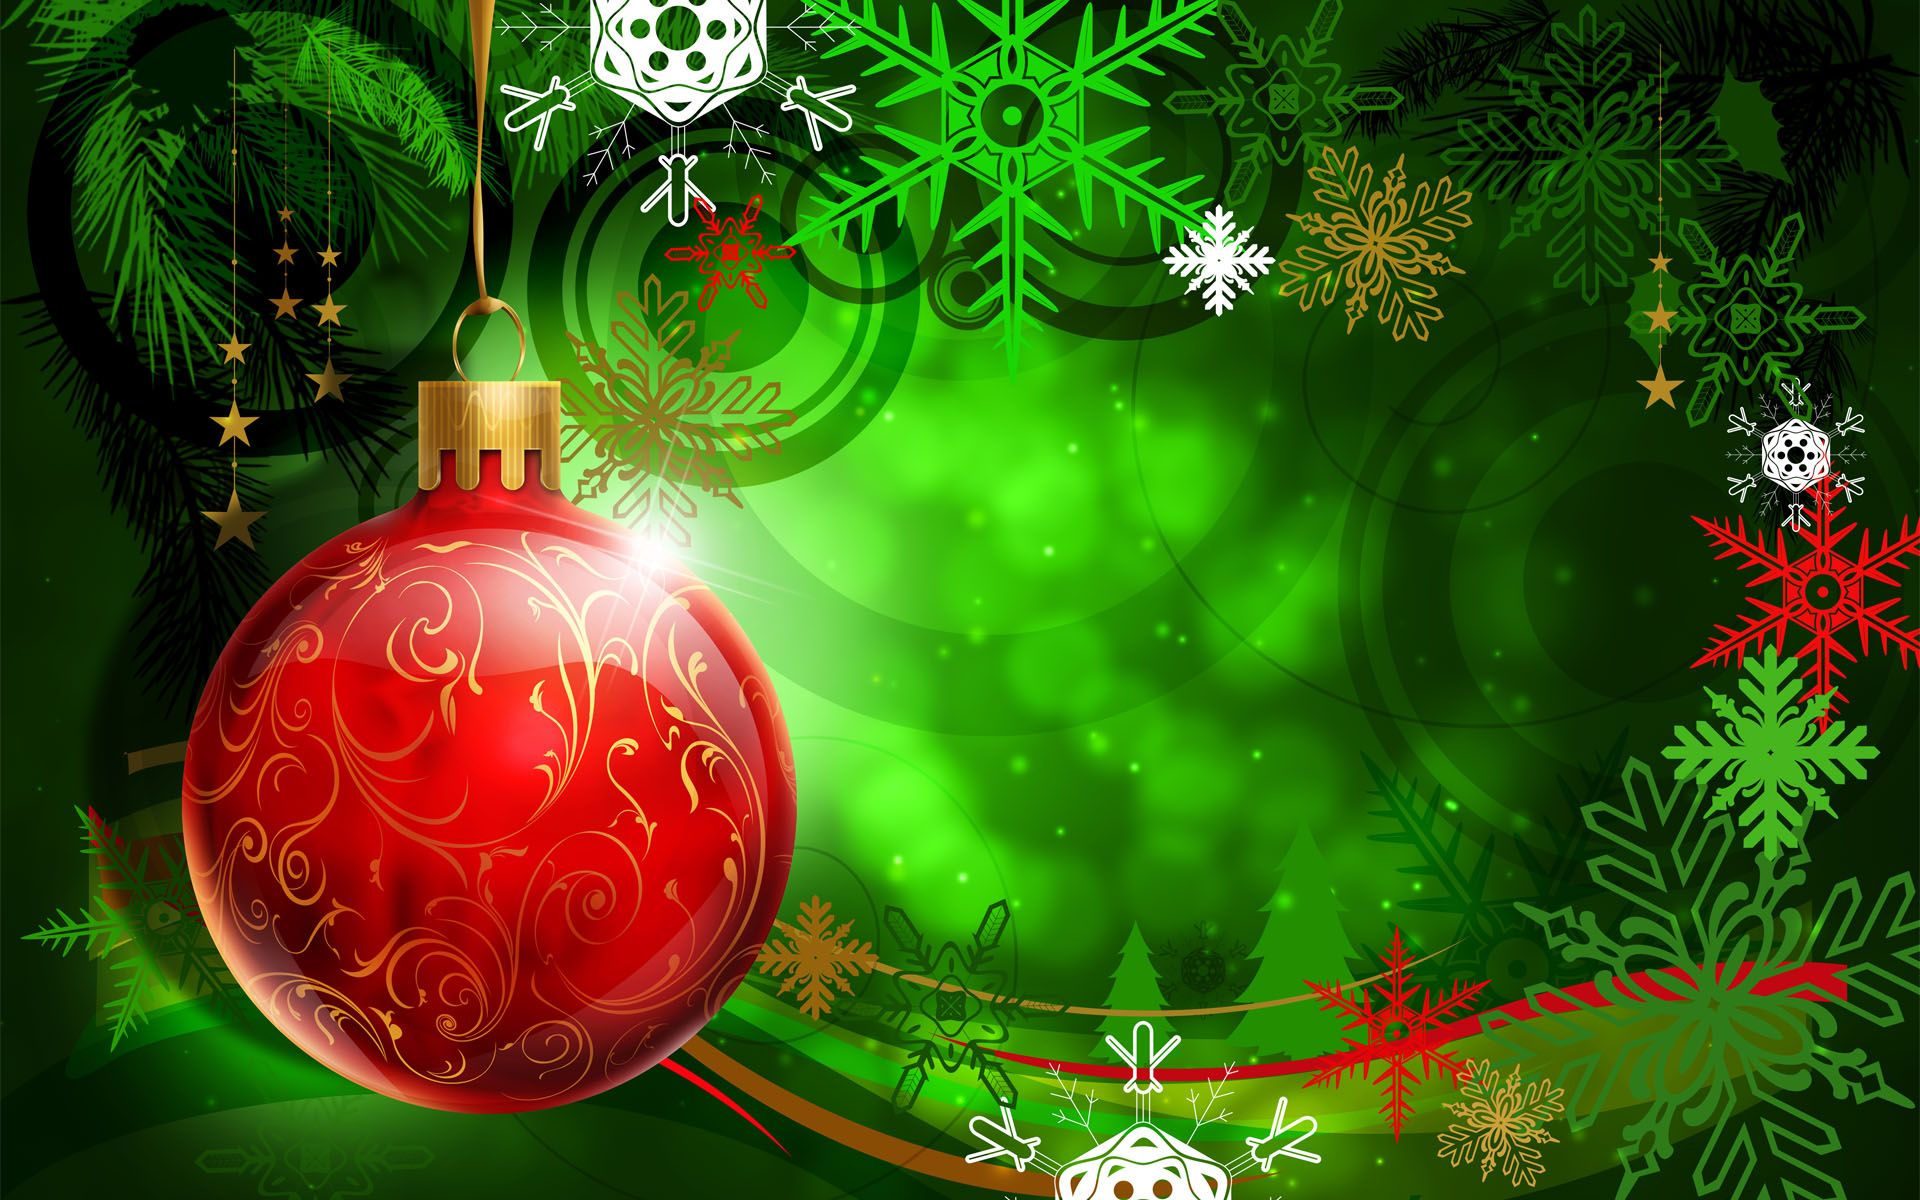 Christmas Wallpaper for Desktop Christmas New Year